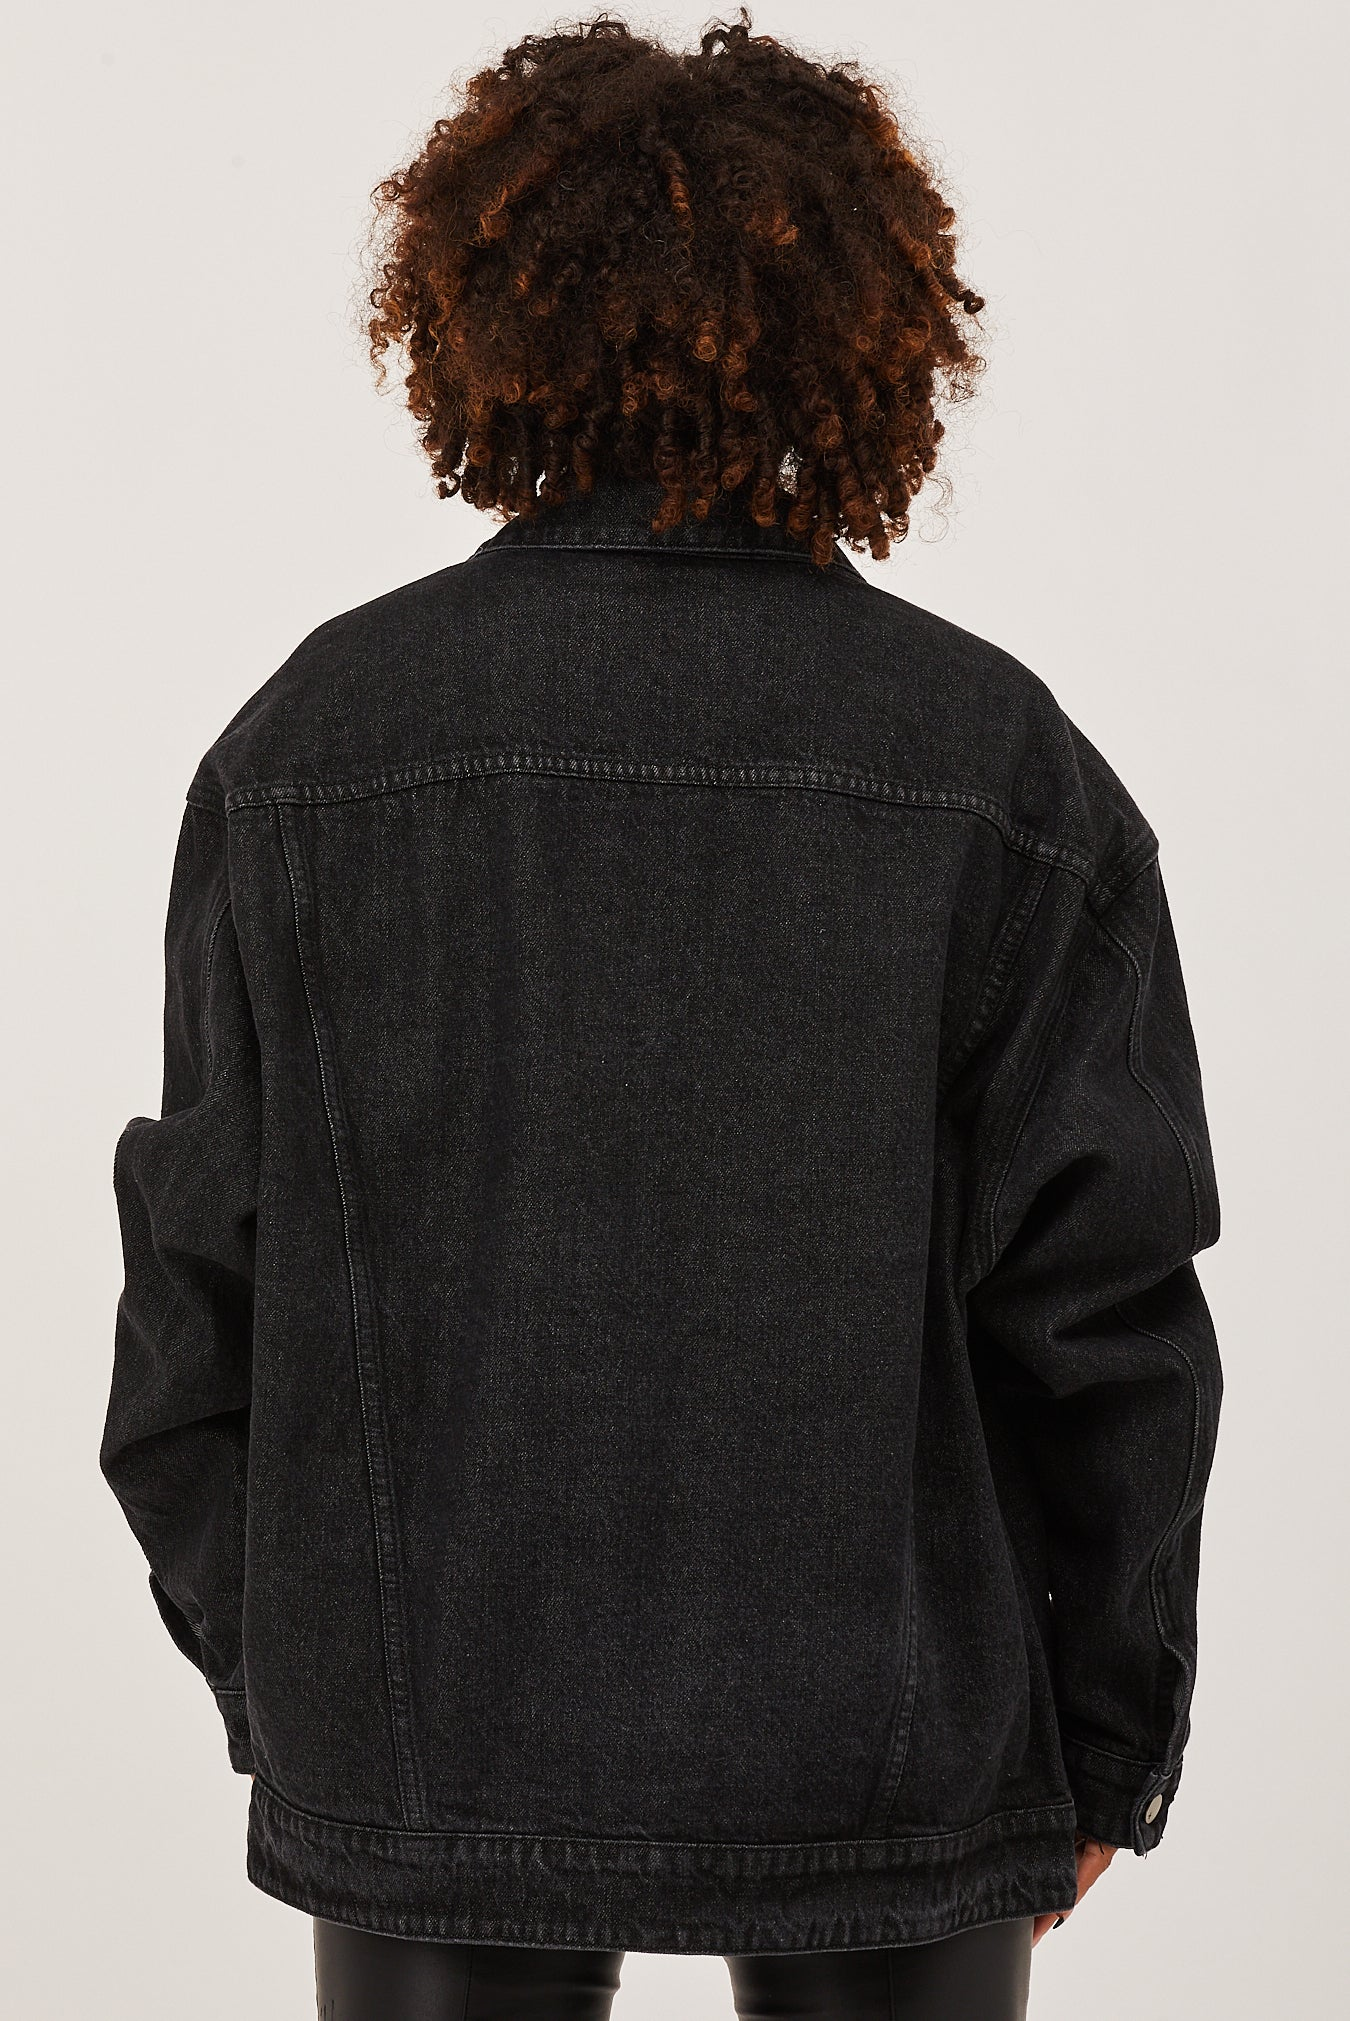 Federation Blown Out Jacket washed black